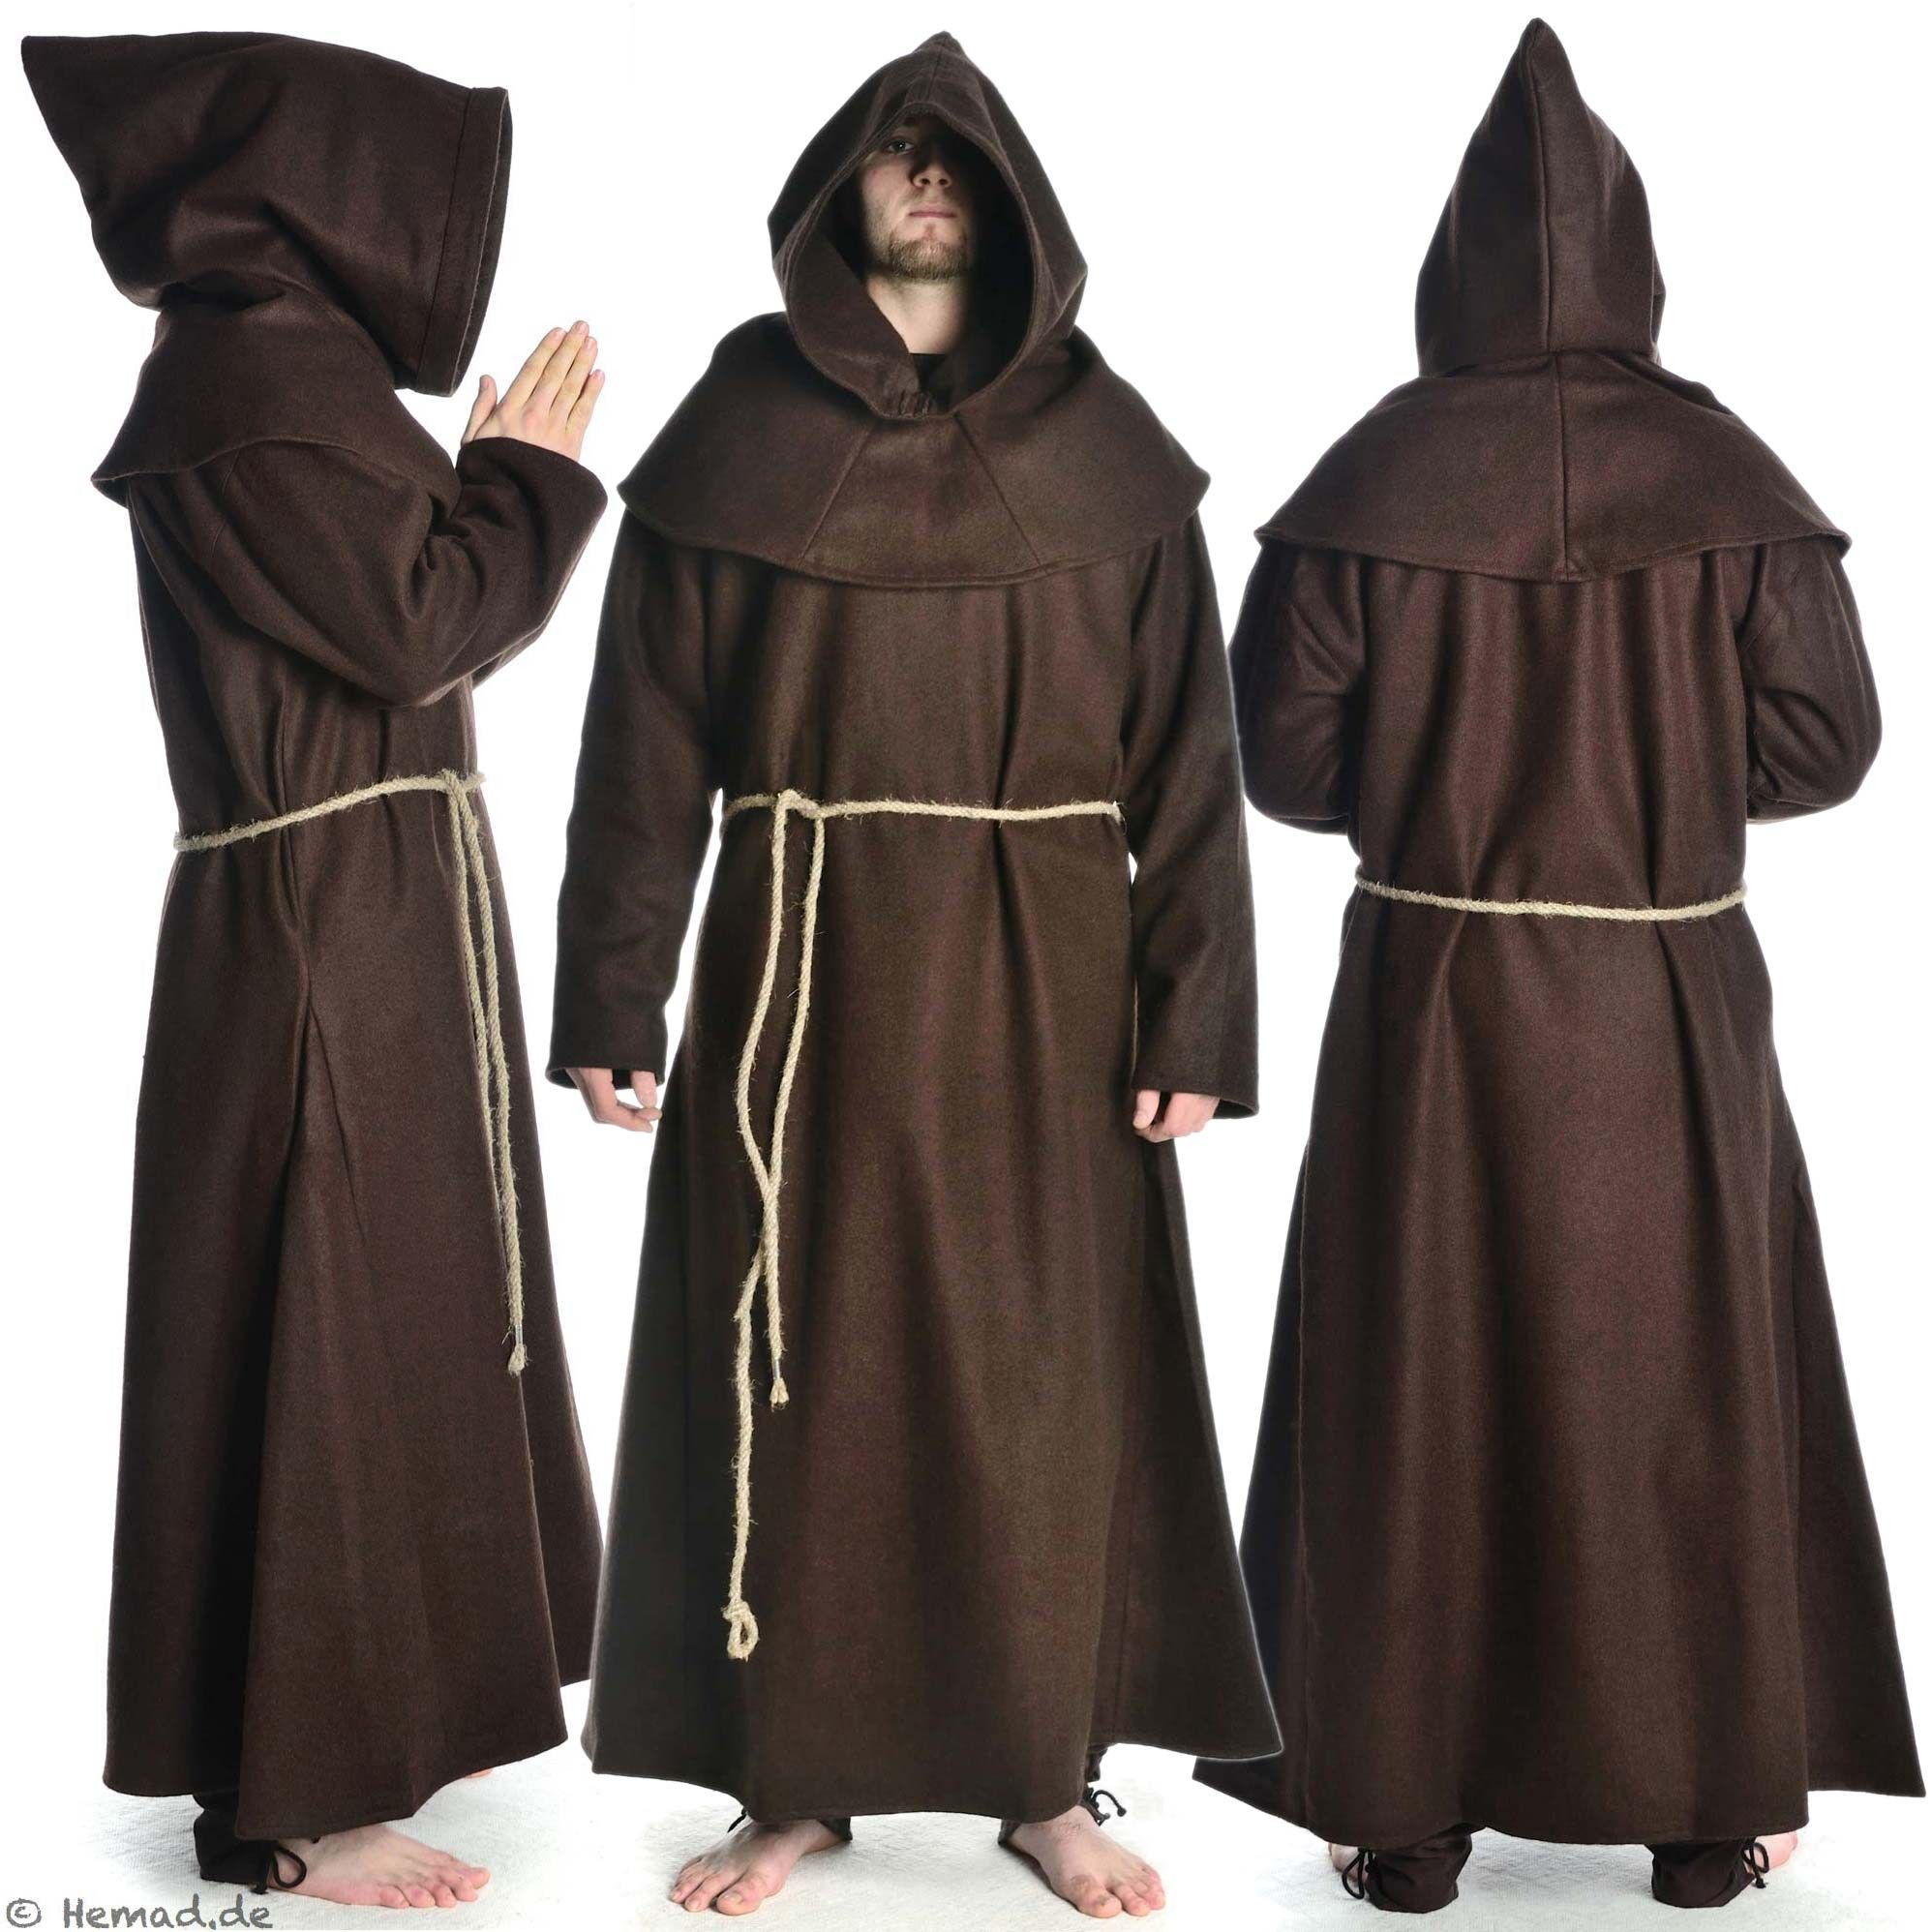 Catholic Monk Robes 1000+ images about monk habbits on pinterest robes ...